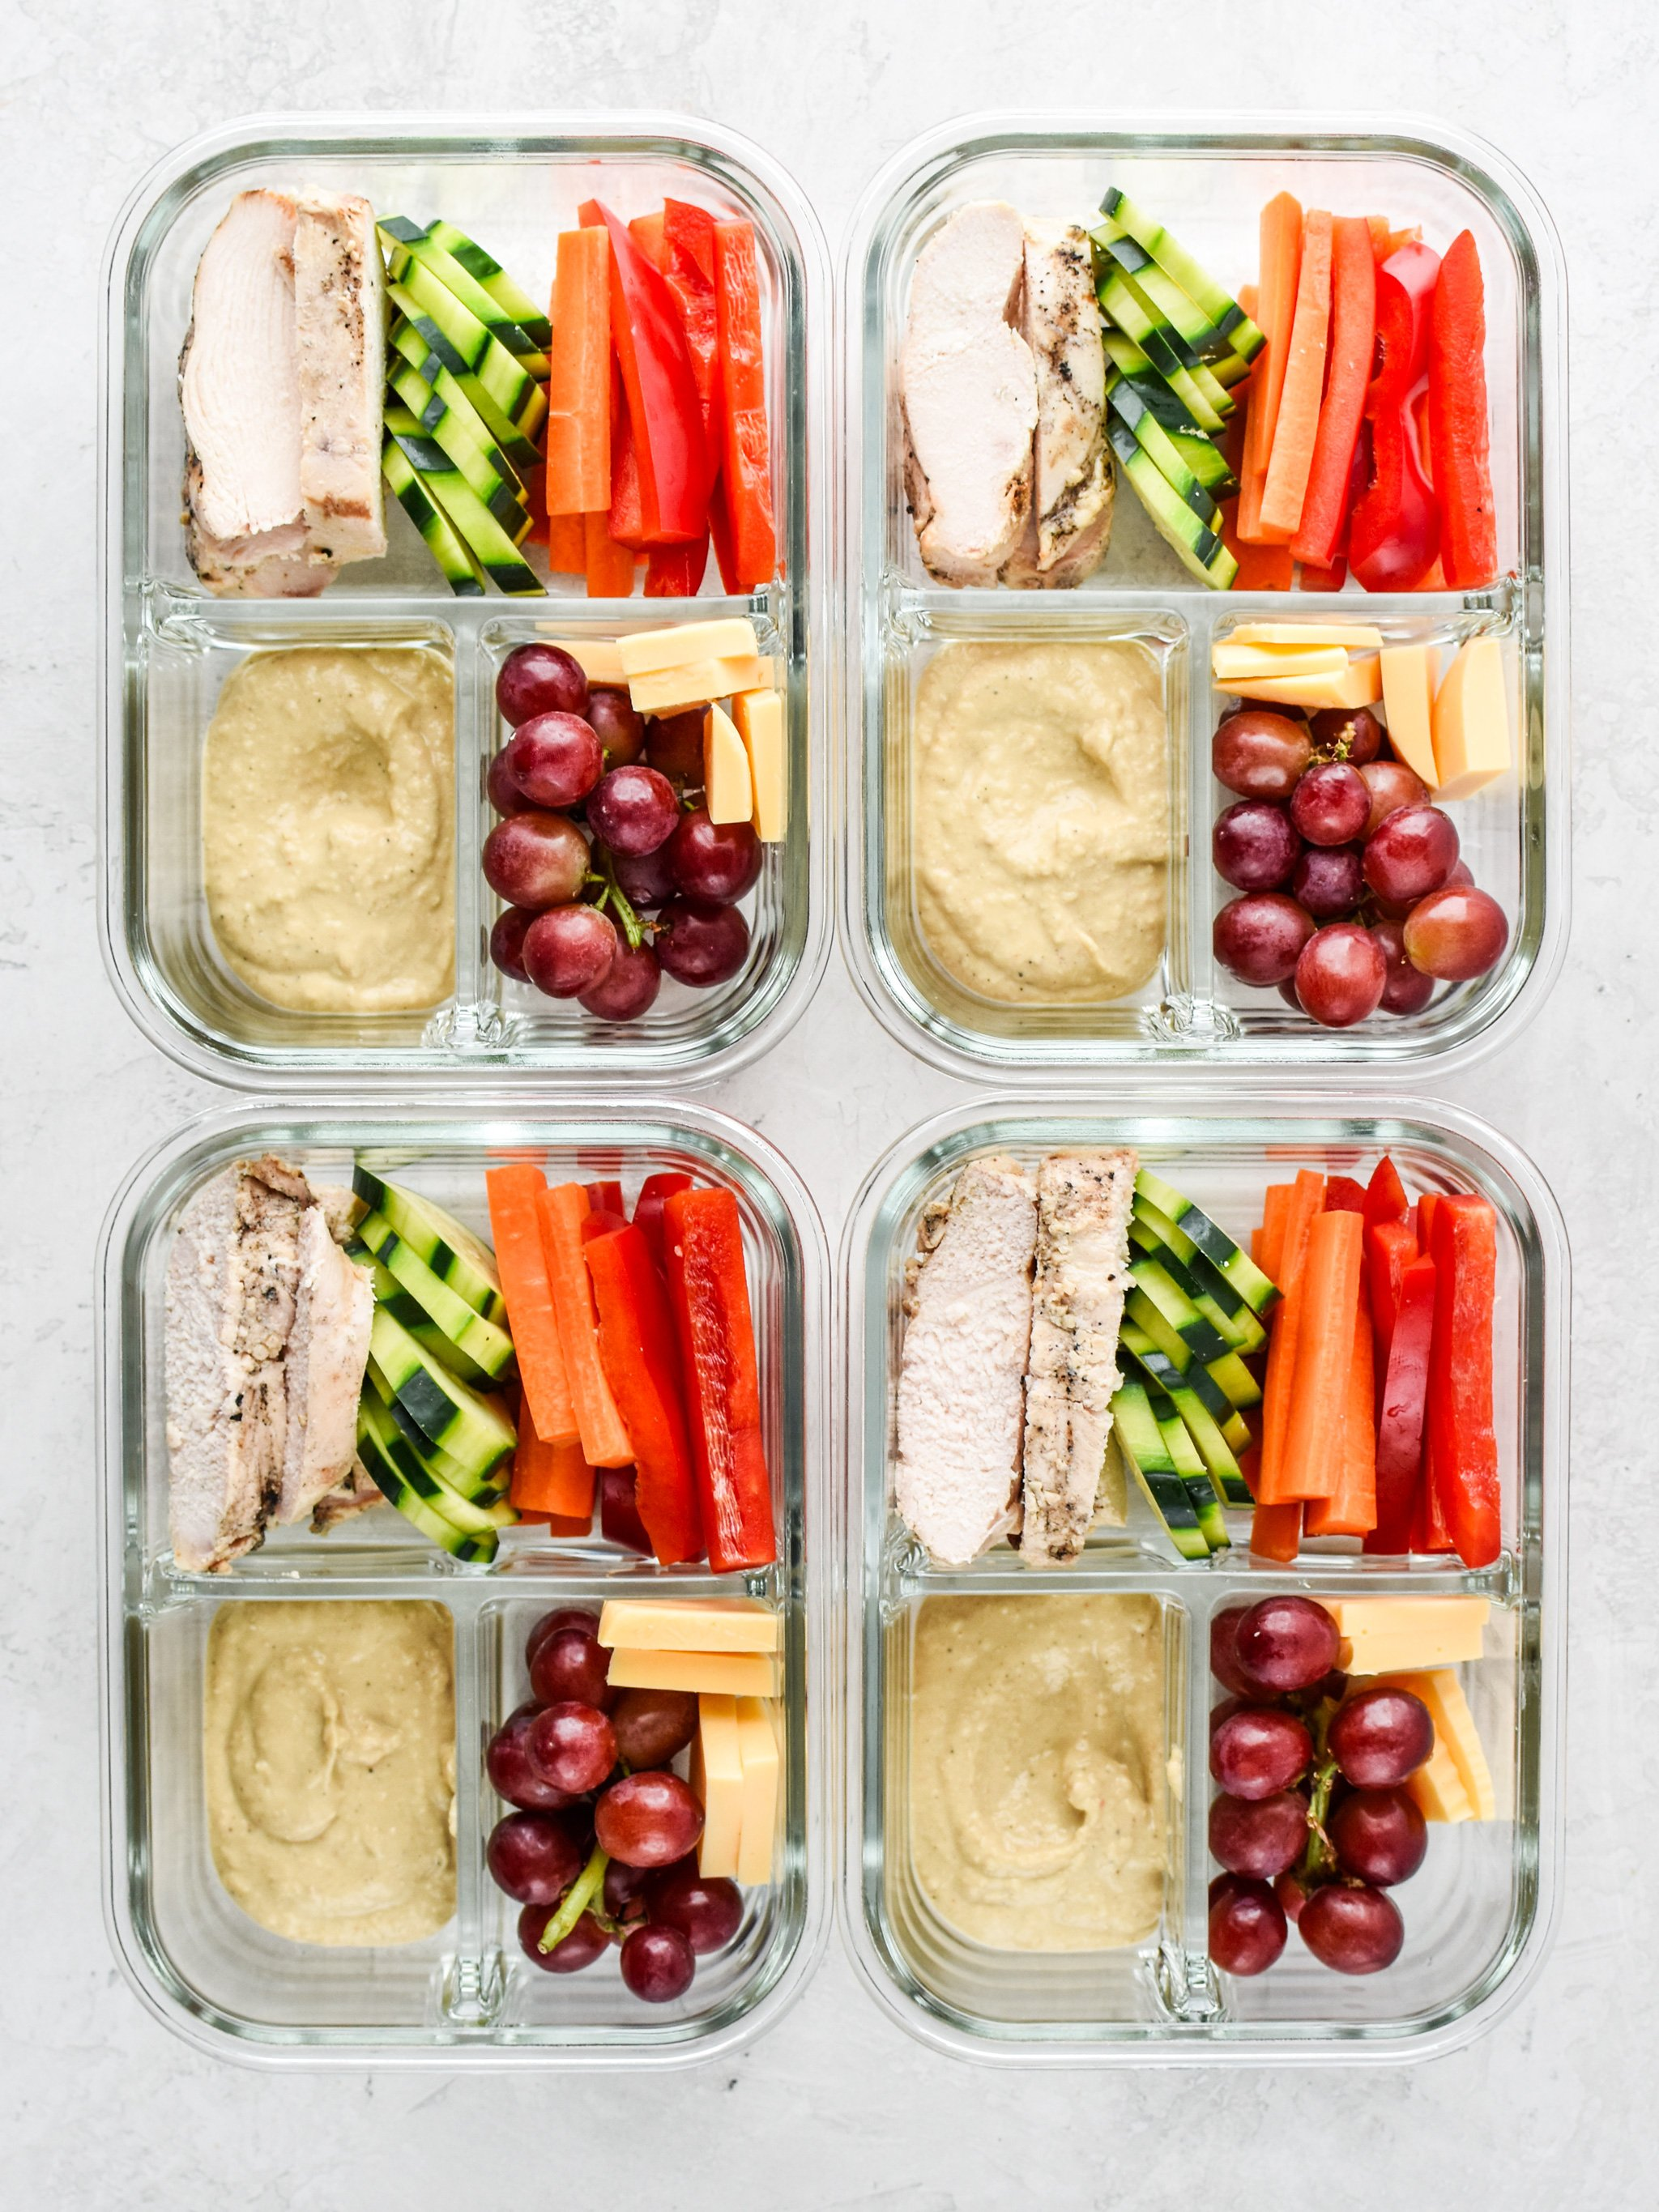 Chicken & Hummus Plate Lunch Meal Prep lunches with chicken, vegetables and hummus.